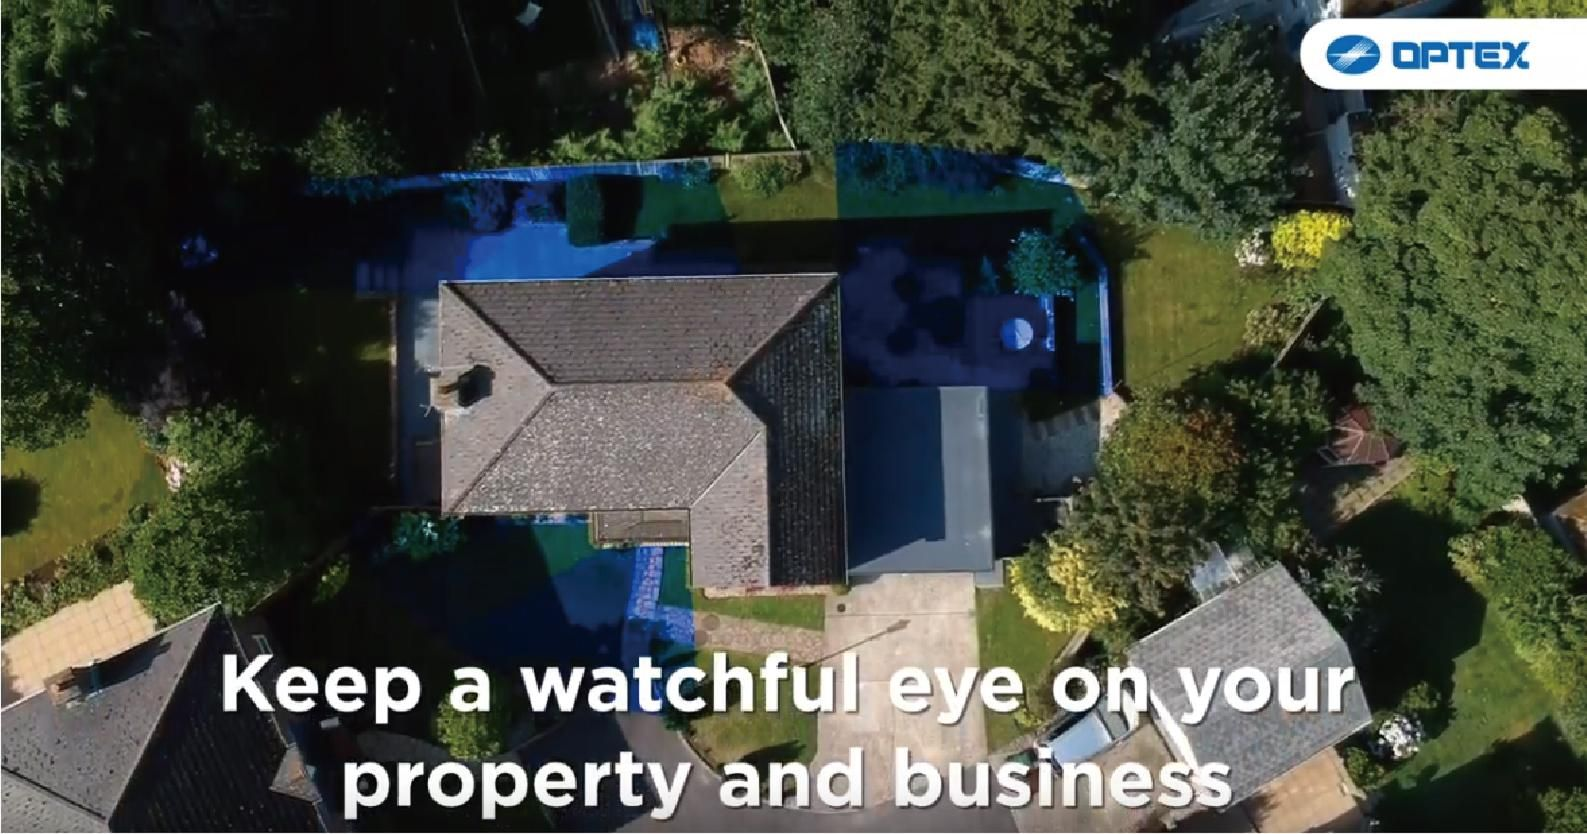 Keep a watchful eye on your property and business with the VXI-CMOD